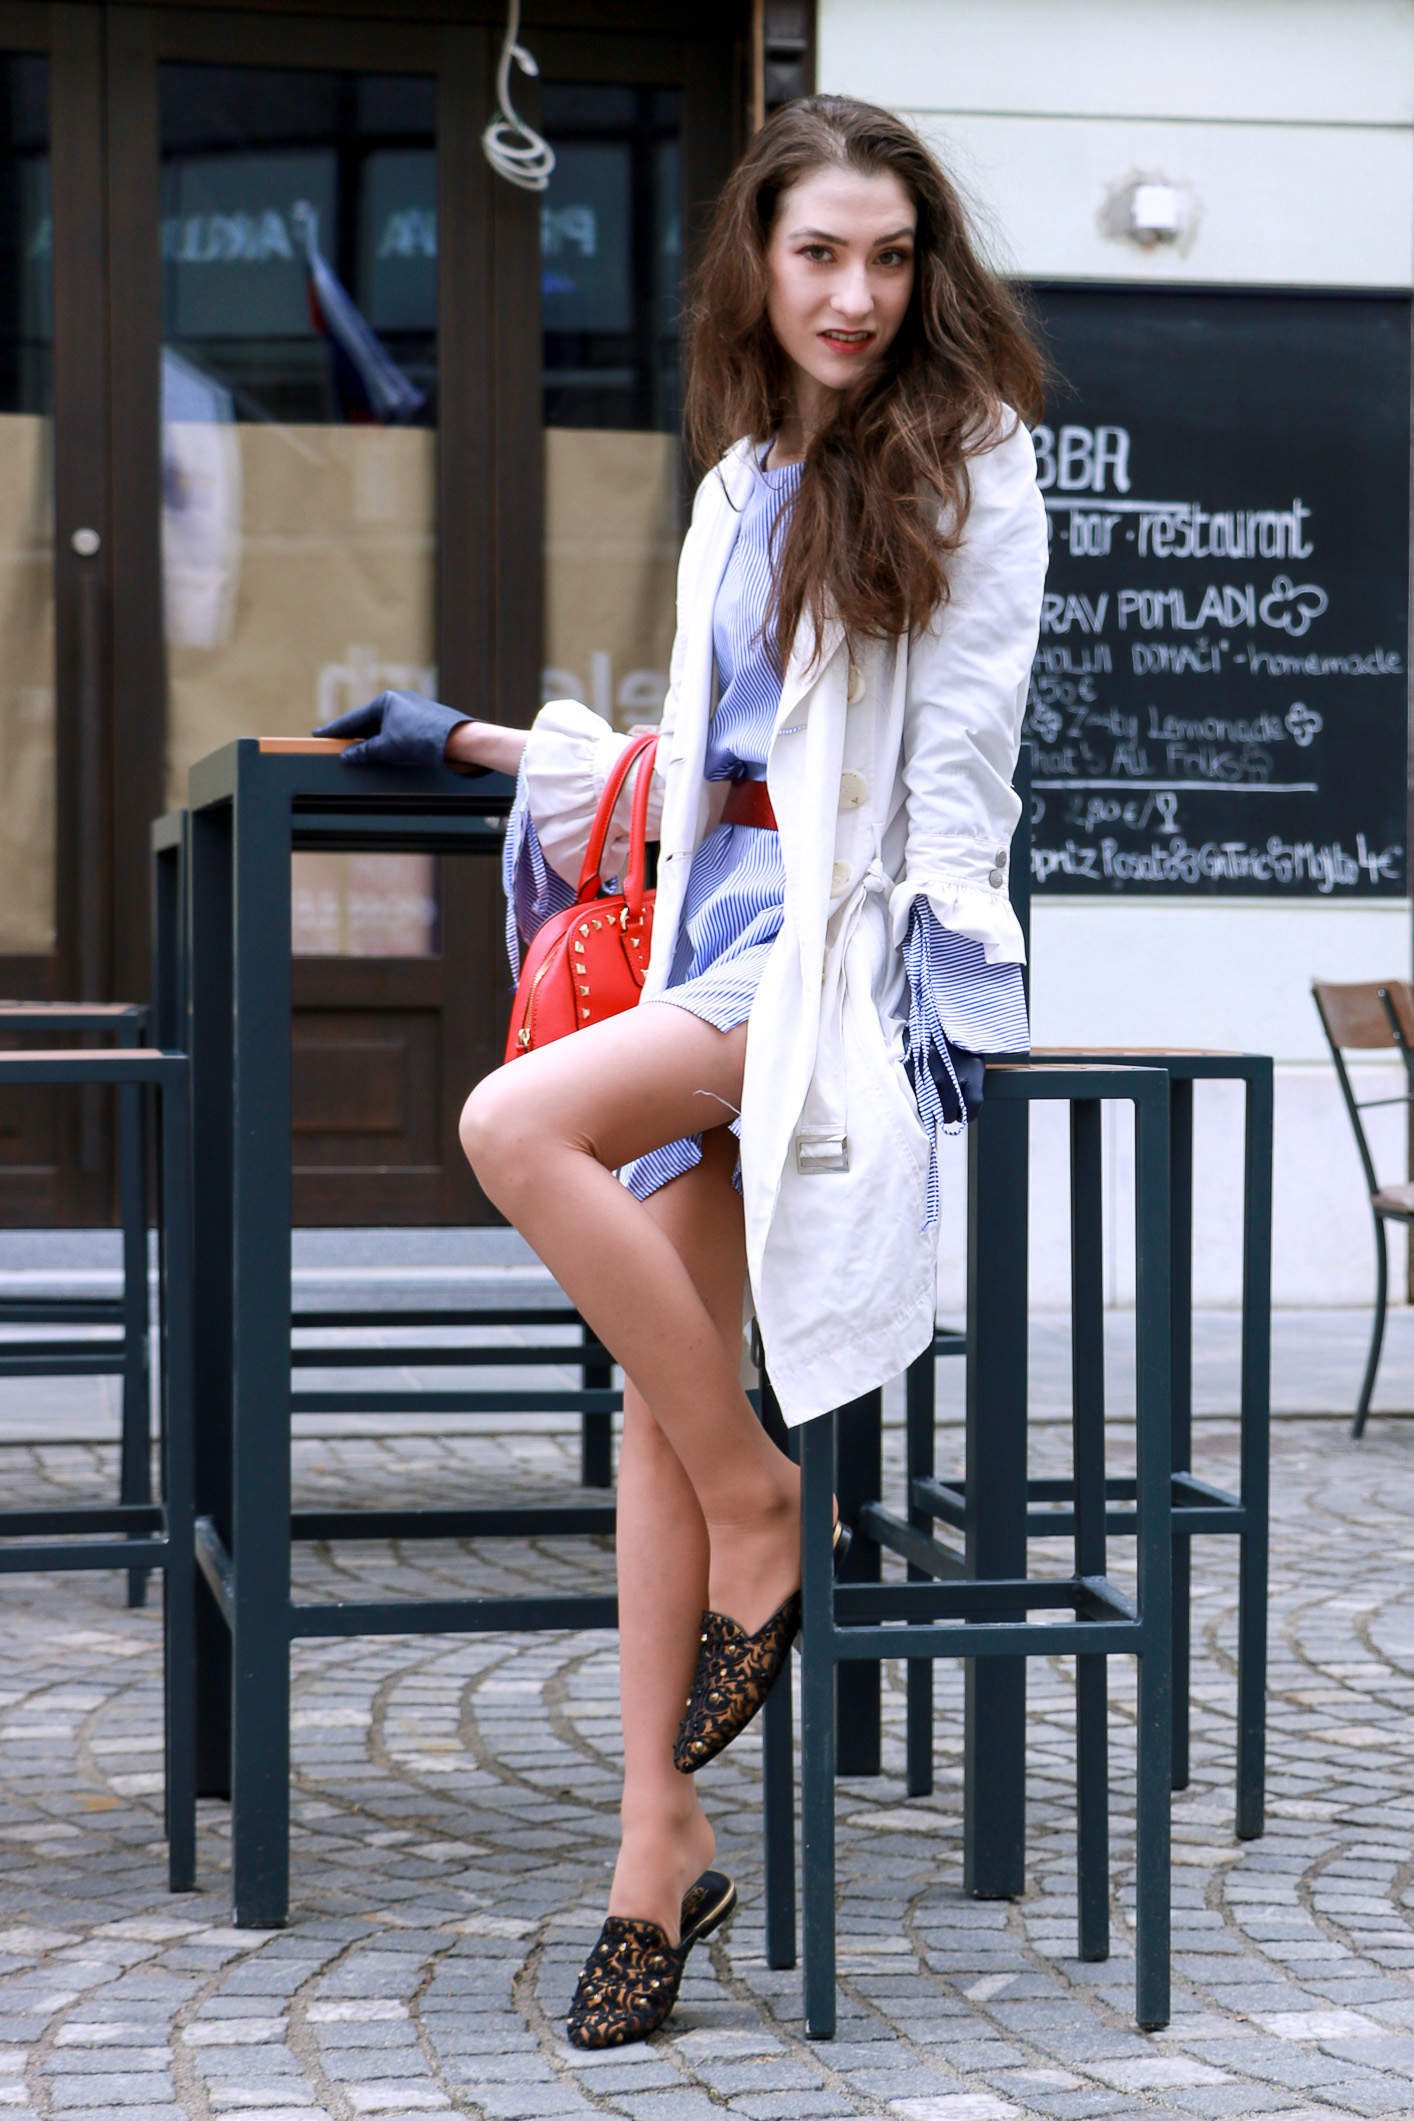 Fashion blogger Veronika Lipar of Brunette From Wall Street sharing how to look tall in flats